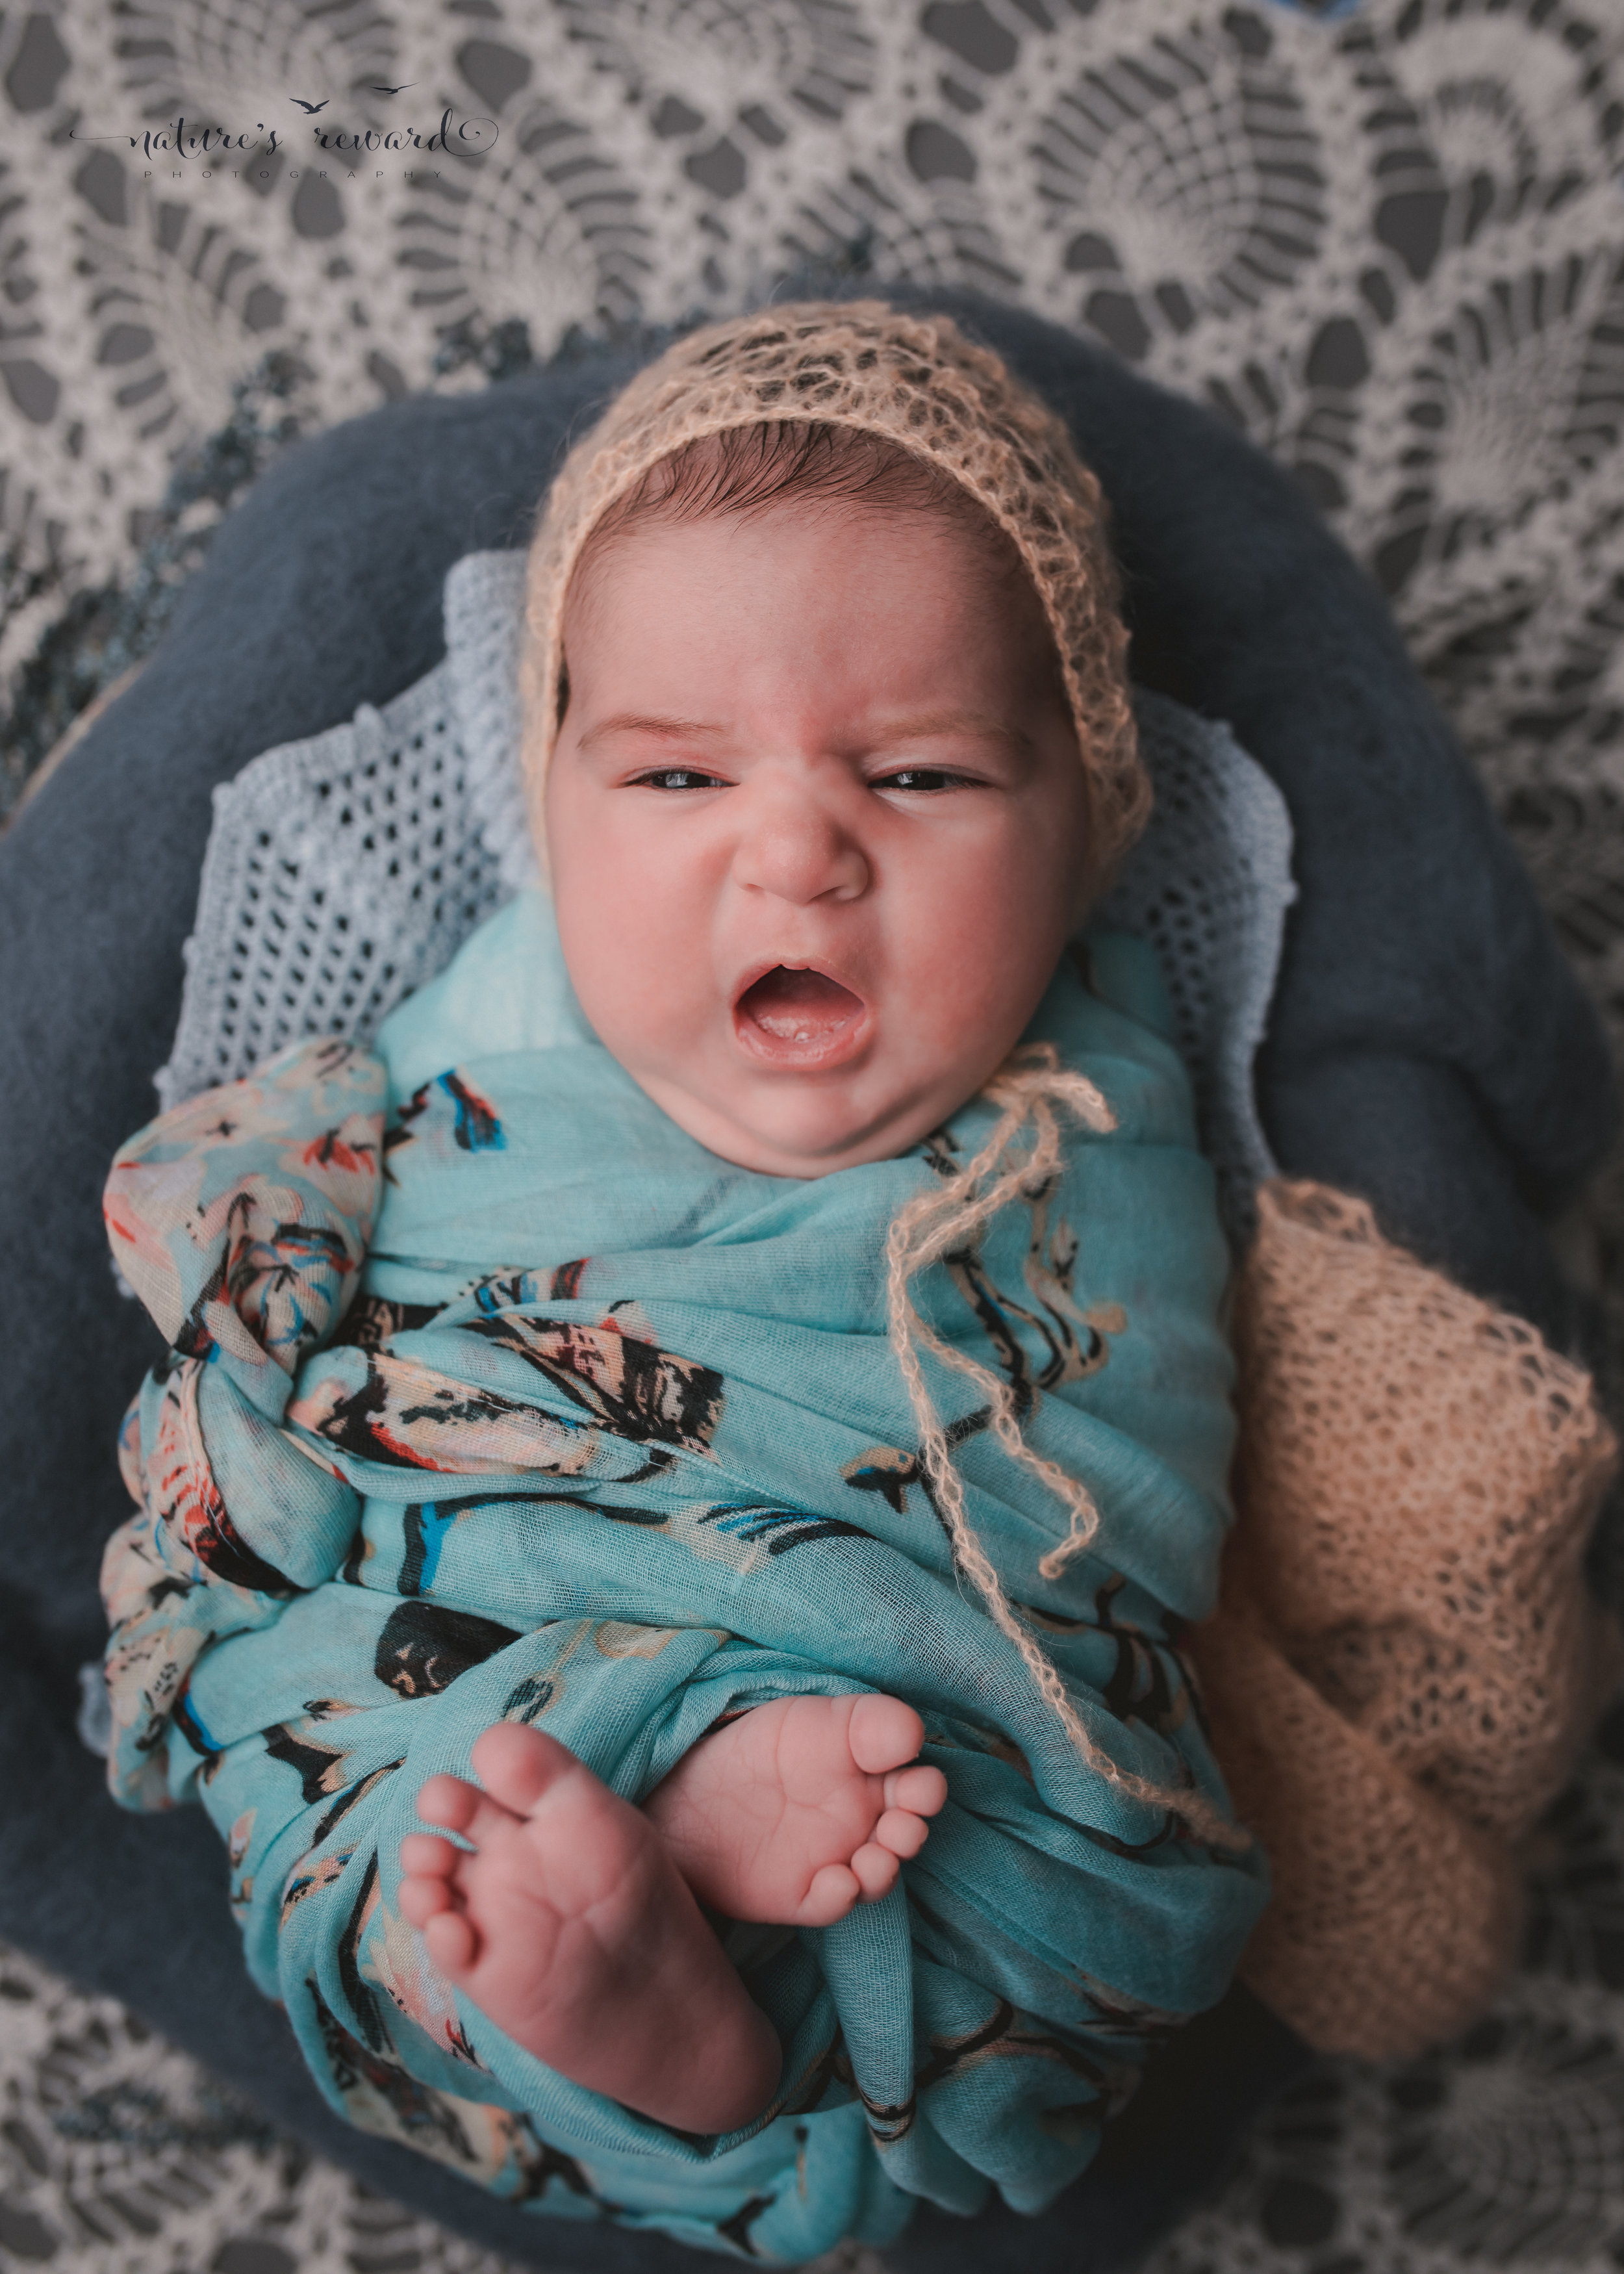 In blue floral and coral on vintage lace, she made this great face - a newborn portrait by nature's reward photography